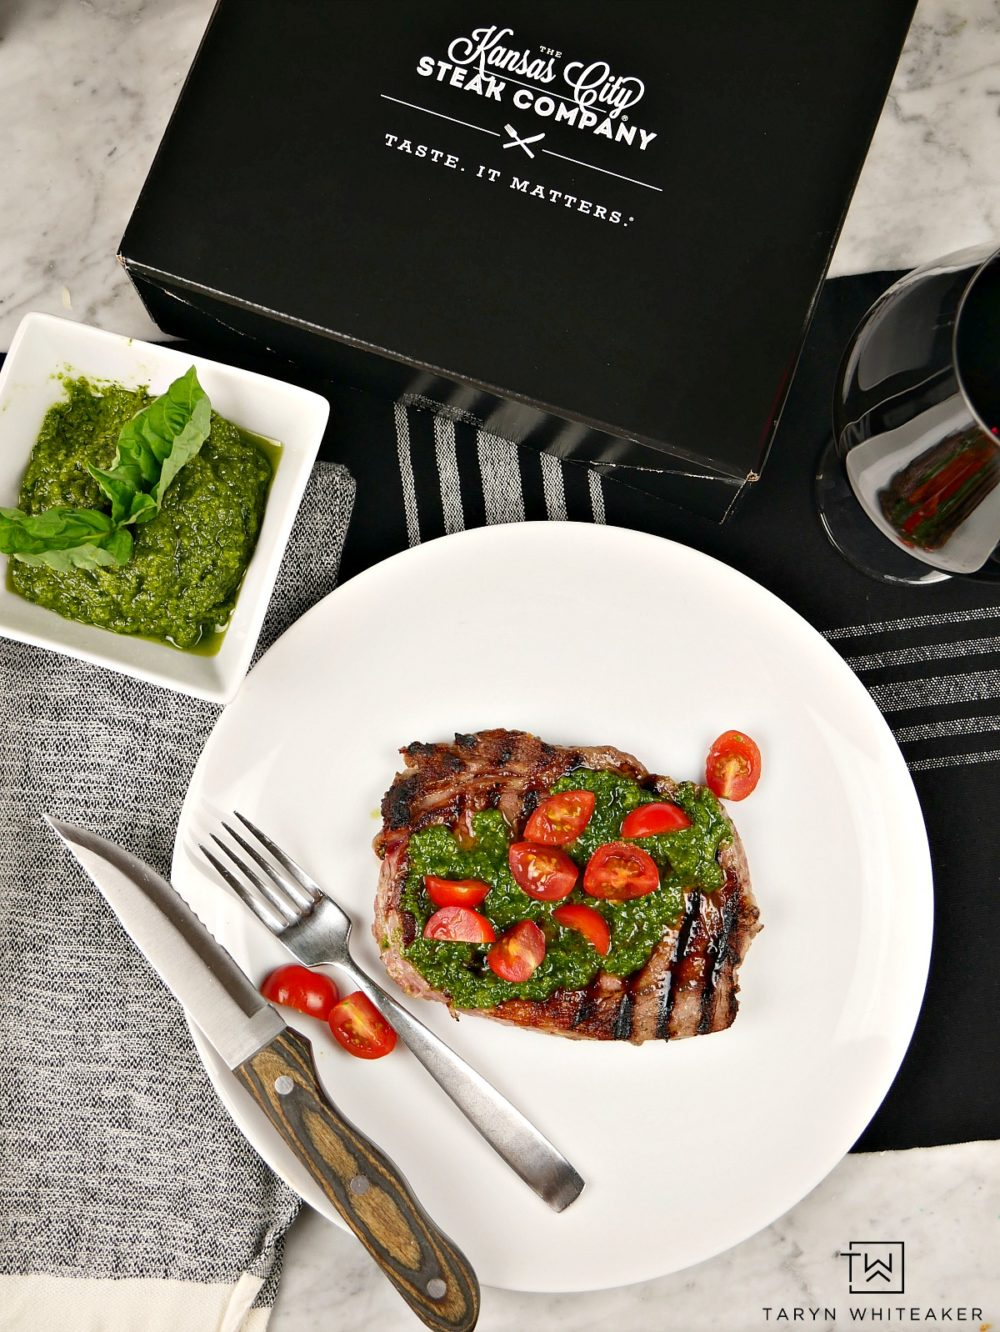 Create a festive look and taste for your steak this holiday season with a homemade pesto sauce topped with bright red tomatoes!